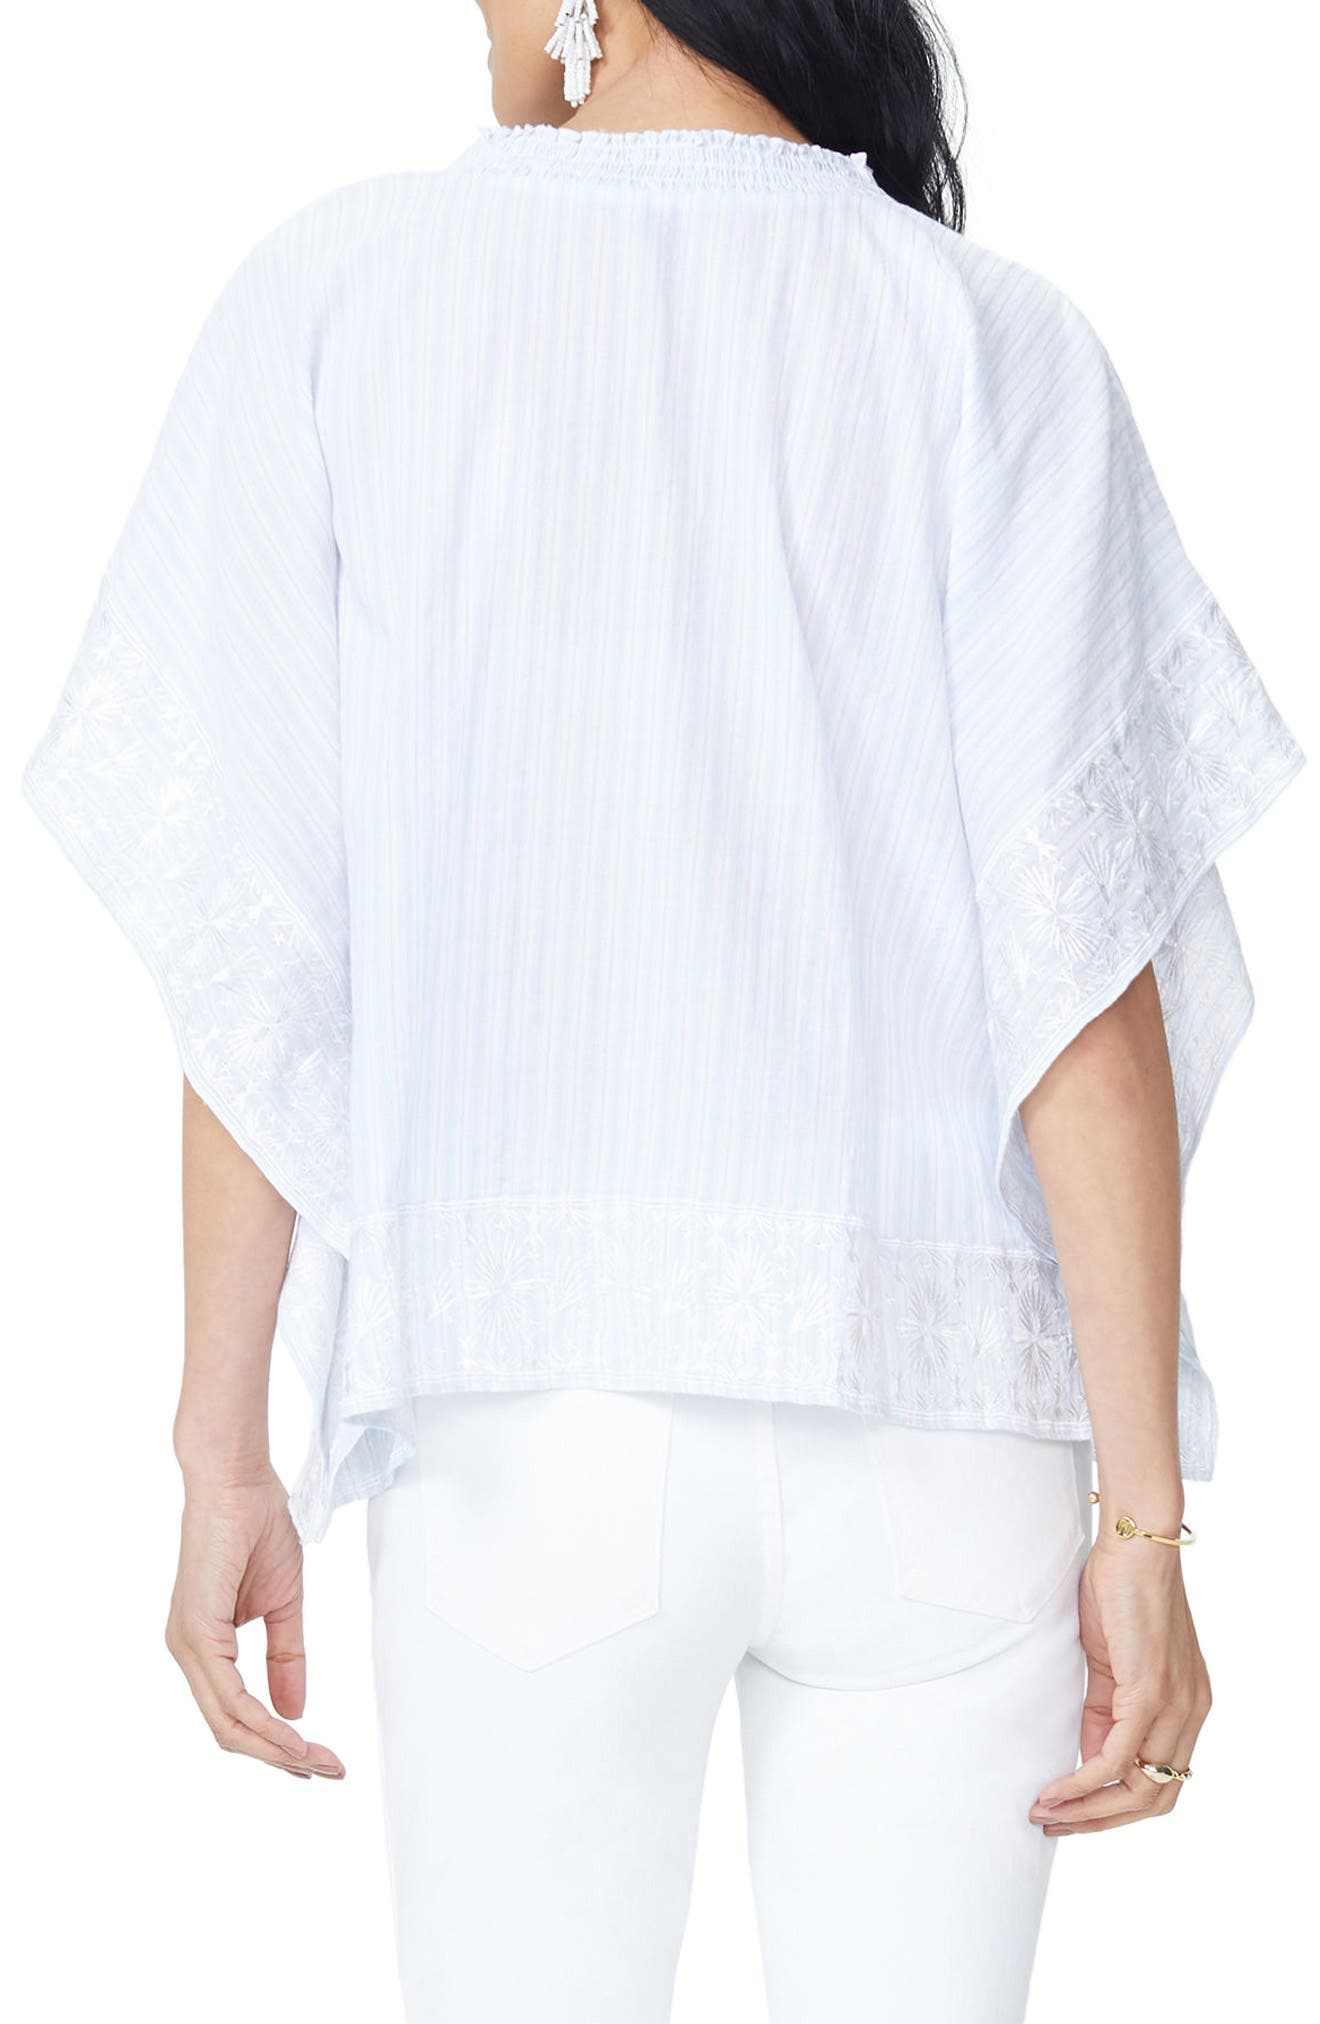 Cascade Embroidery Popover Top,                             Alternate thumbnail 2, color,                             Castaway Stripe Tranquility